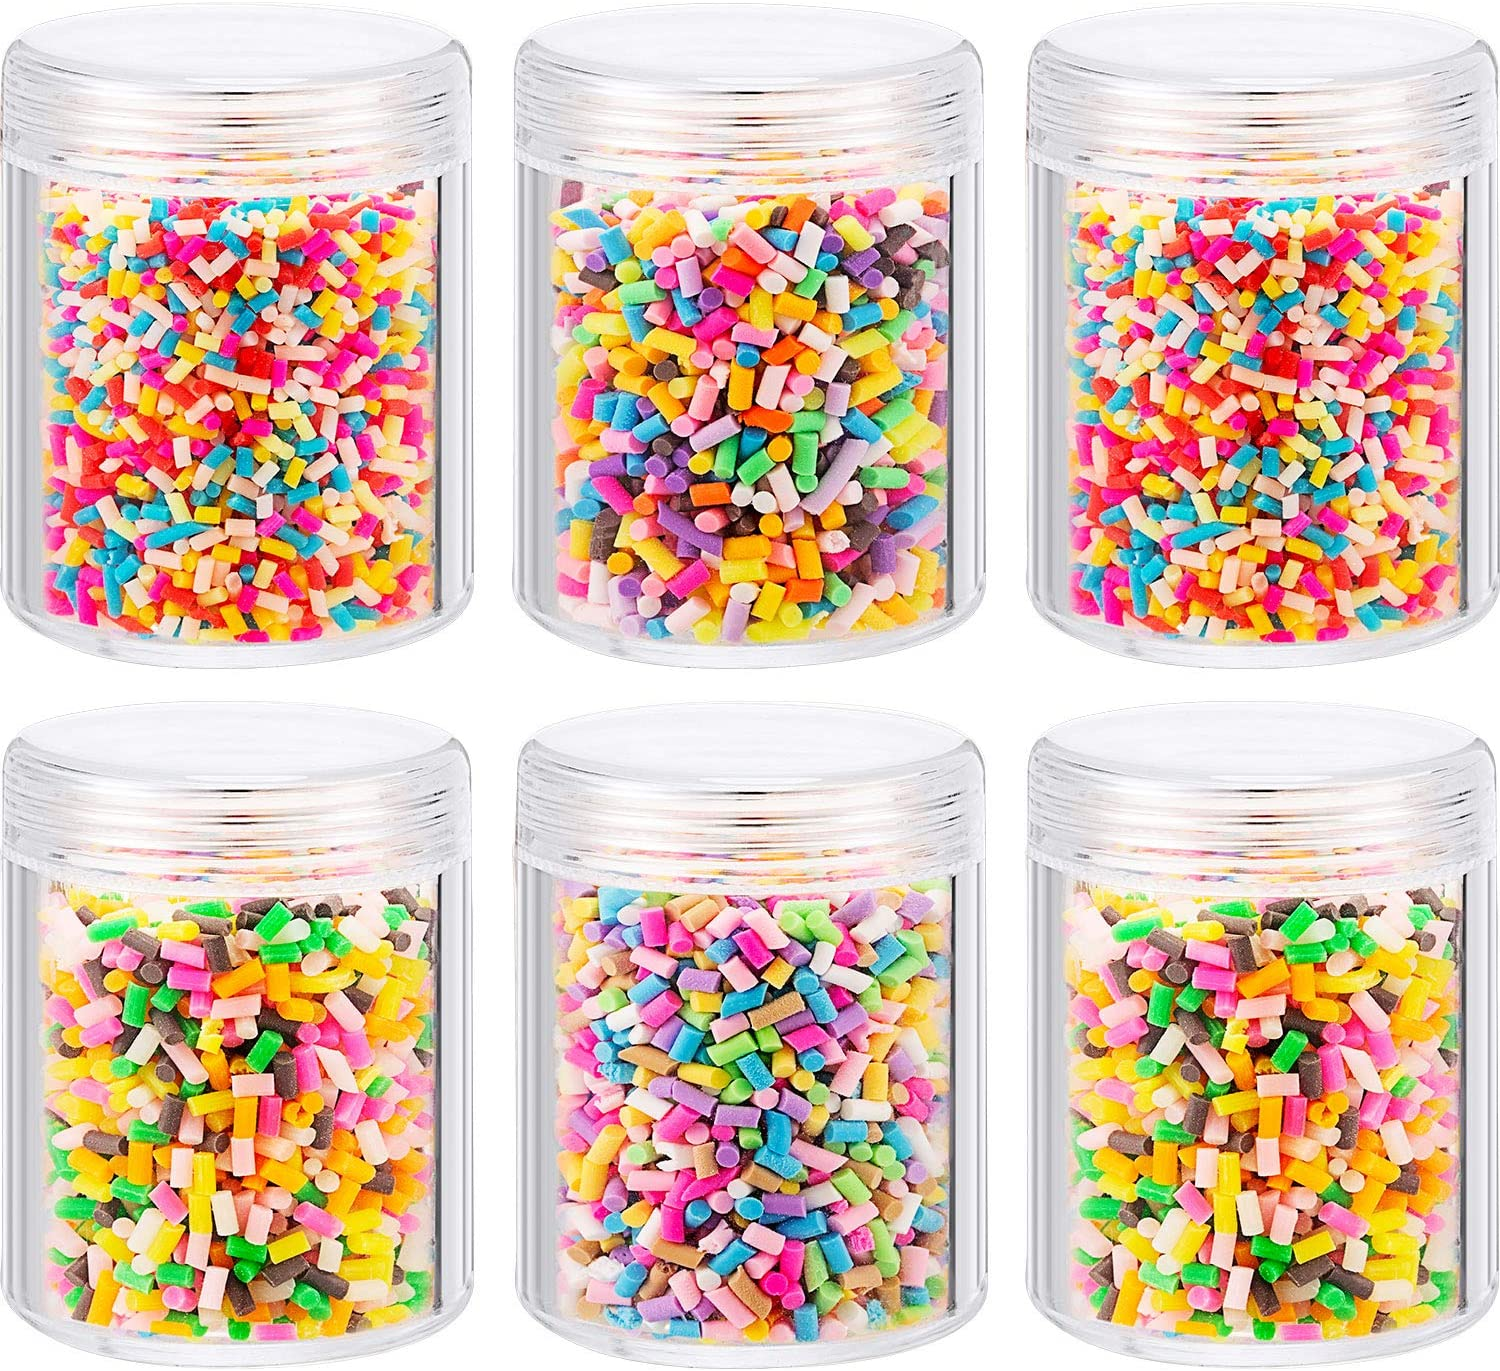 Zhanmai 6 Bottles of Colorful Fake Candy Sweets Sugar Chocolate Ice Sprinkles Decorations for Fake Cake Dessert Simulation Food Slime Kit DIY Crafts with Storage Bottles (Multicolor)